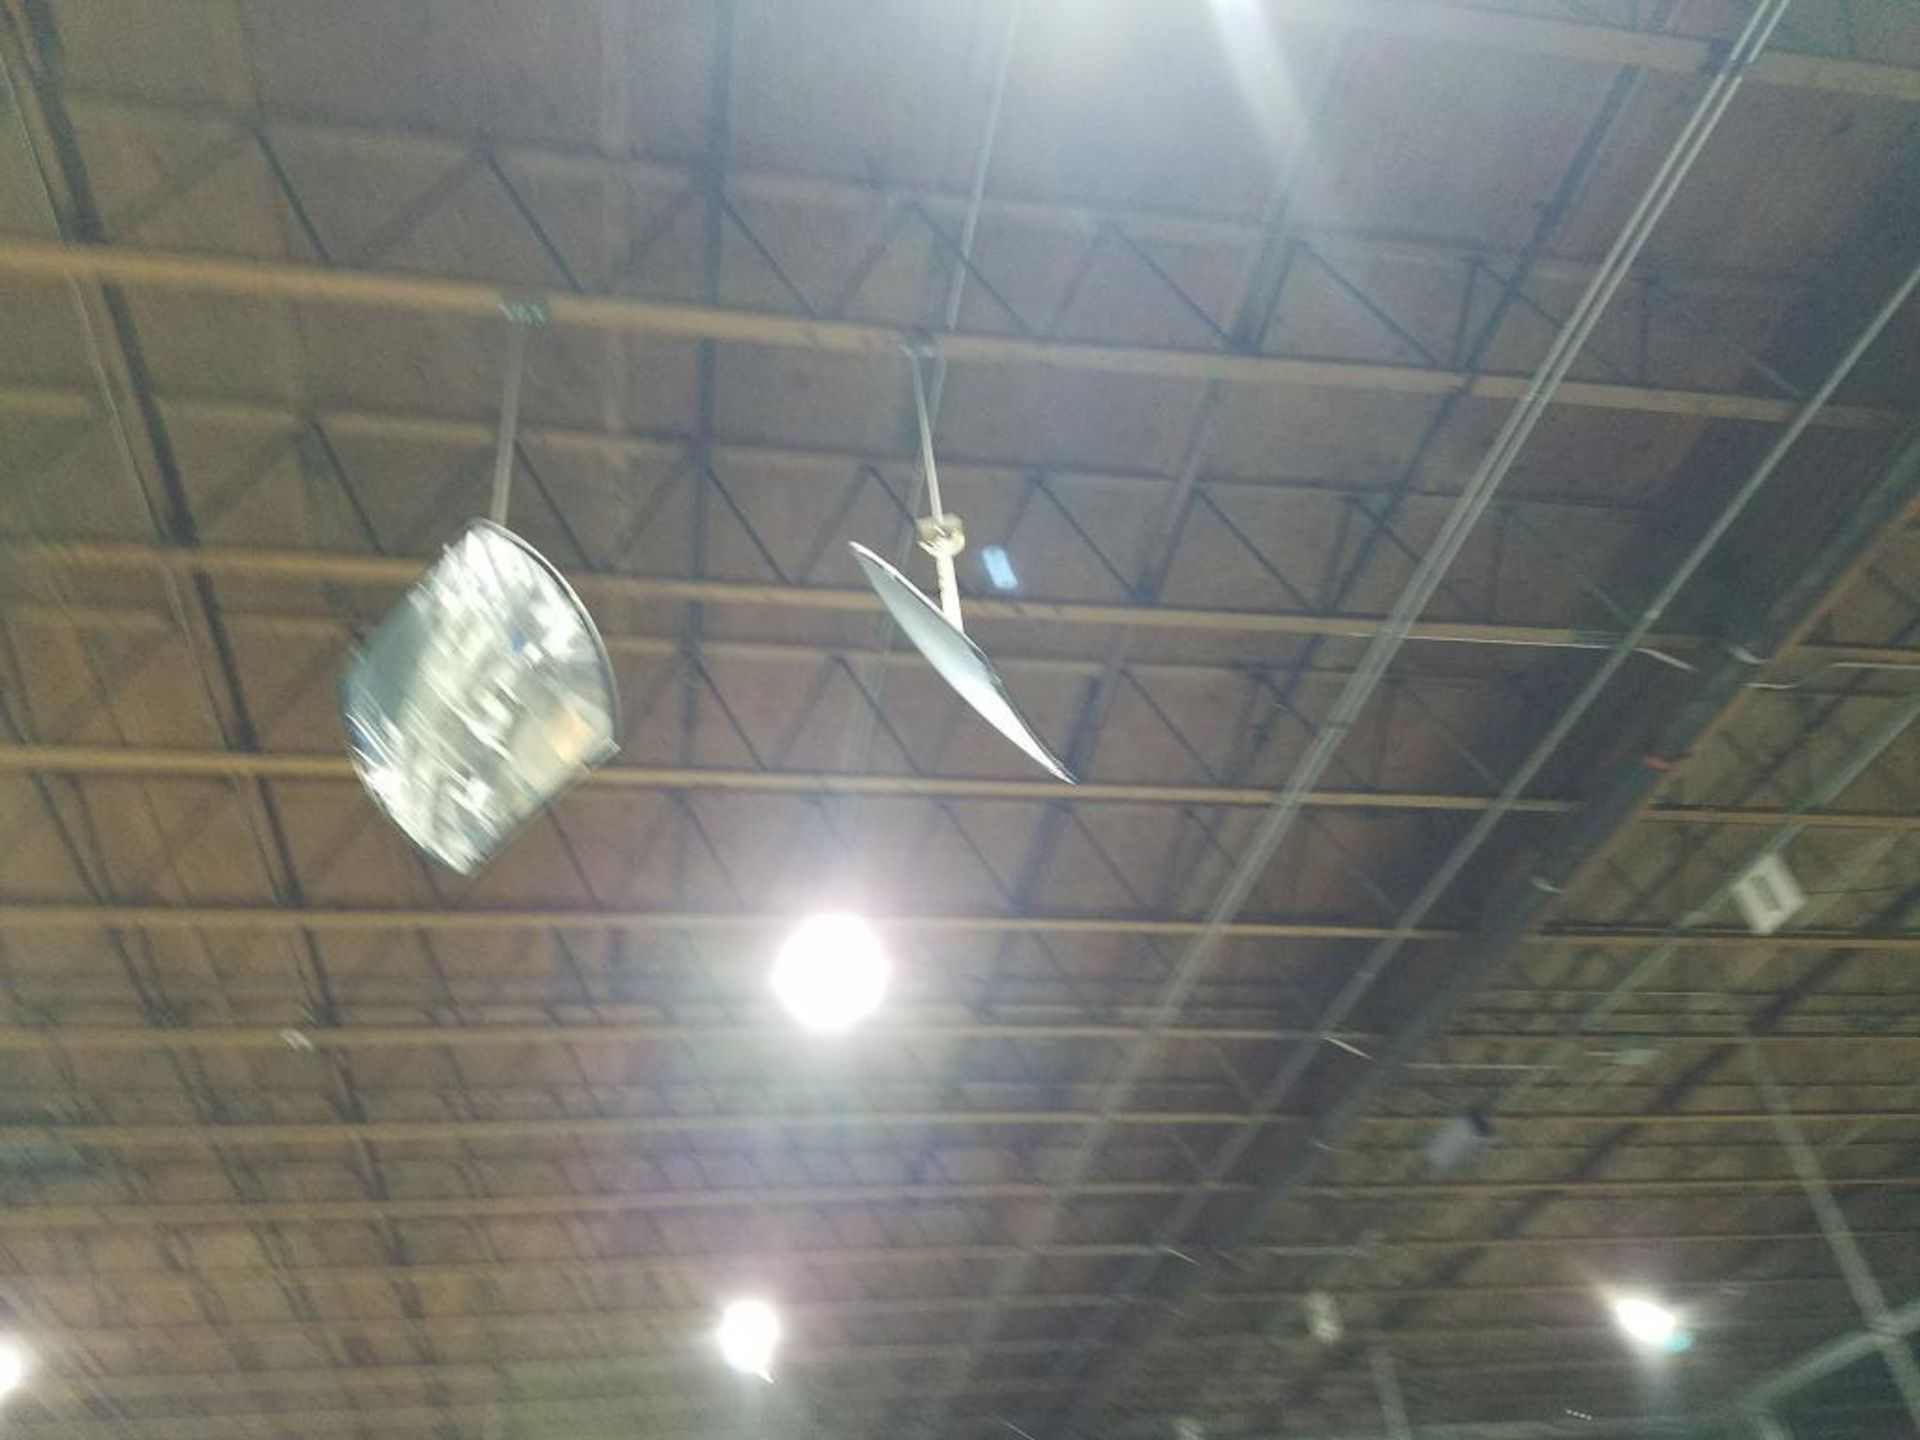 ceiling mounted safety mirrors - Image 2 of 4